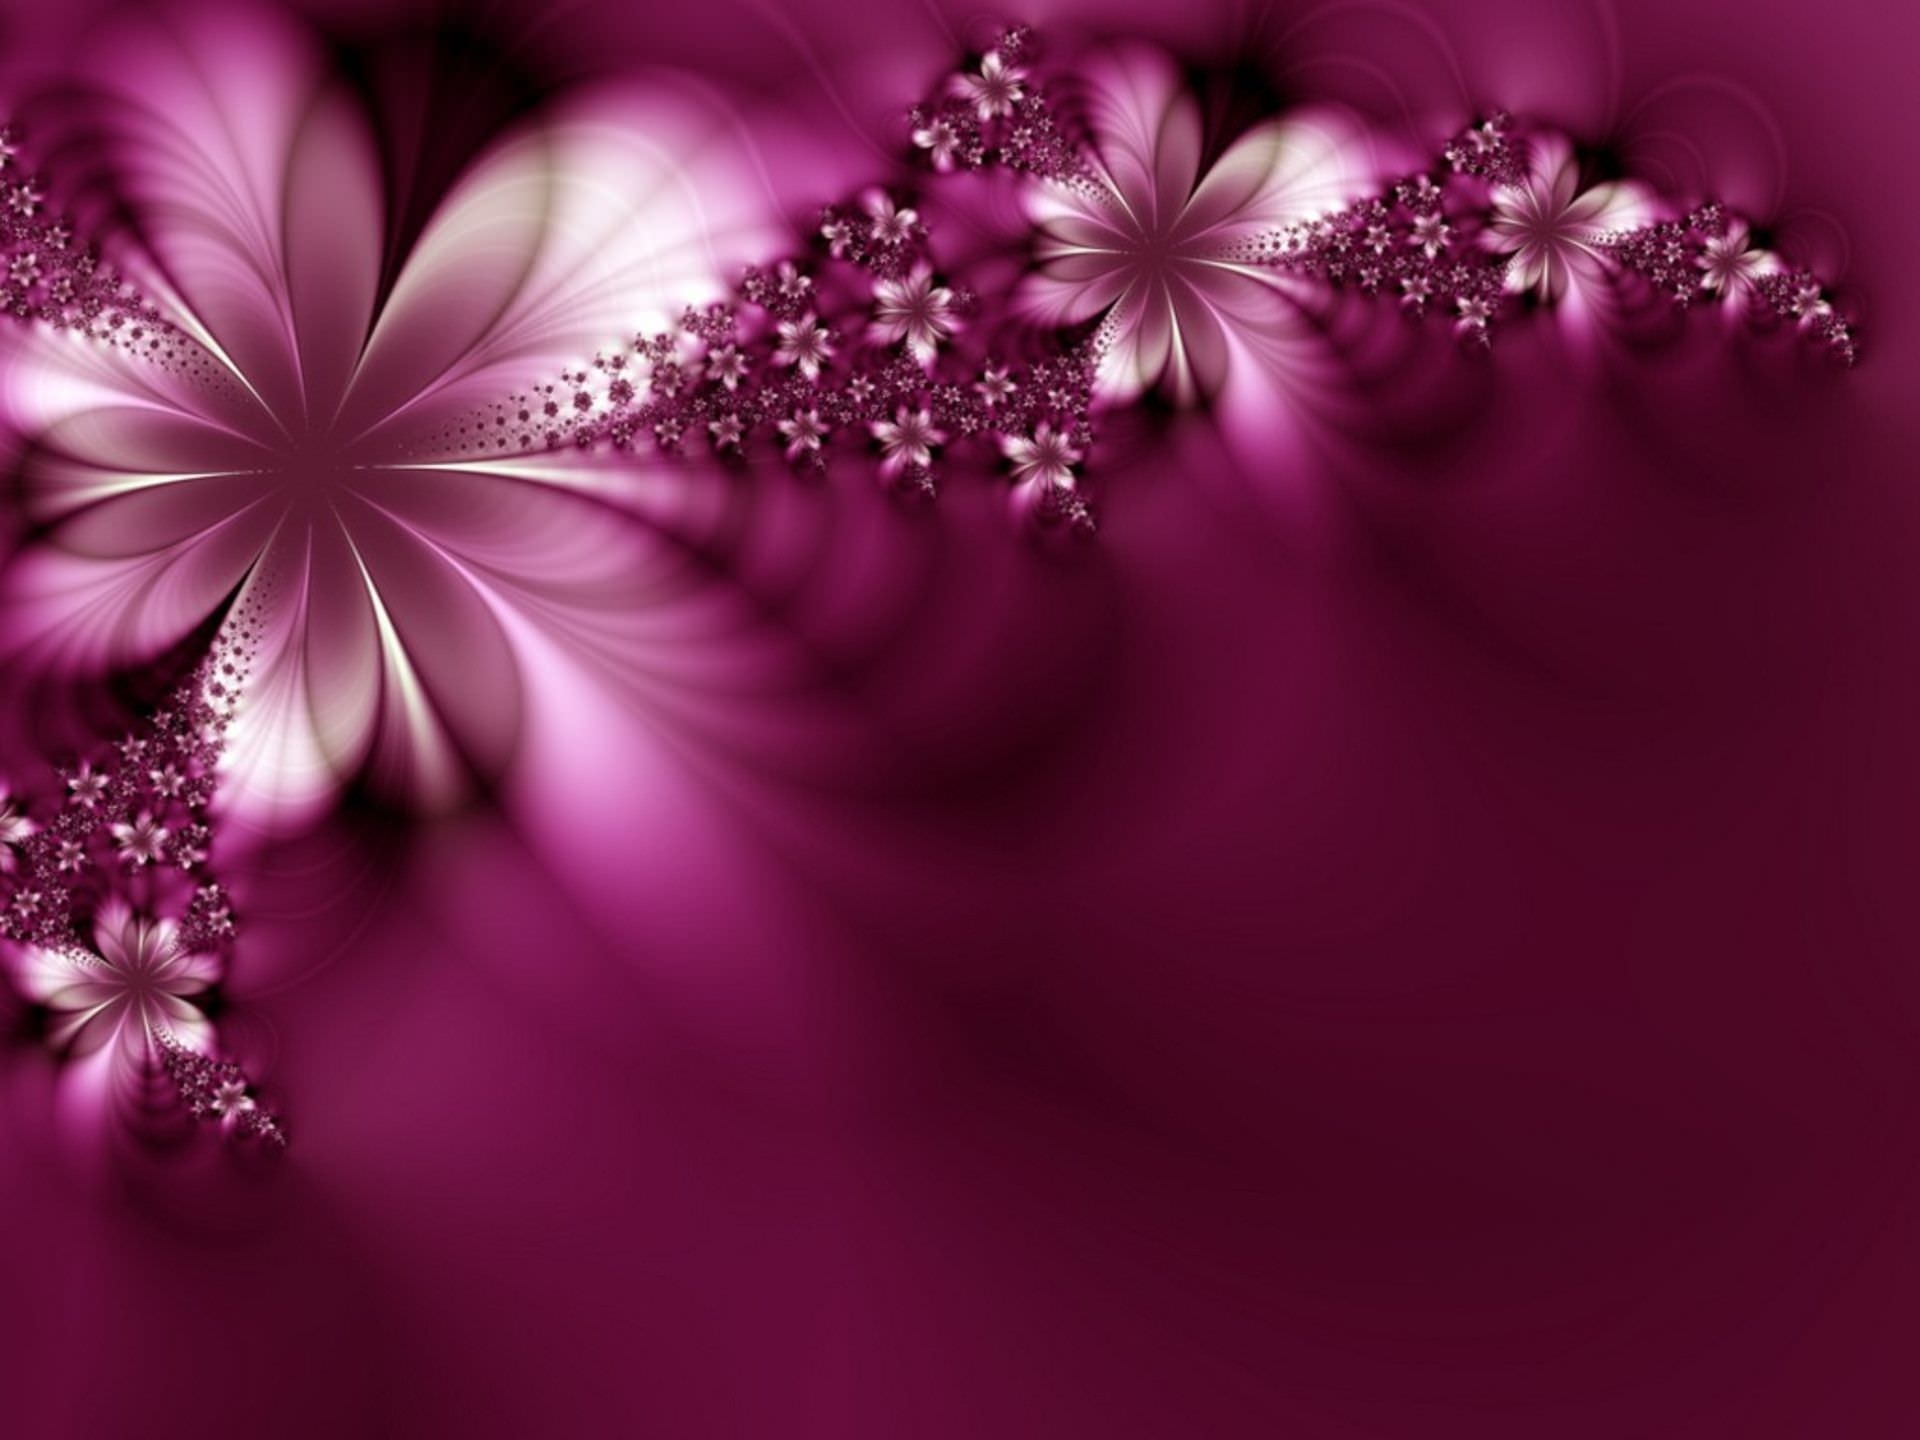 Abstract Purple HD Flower Wallpaper